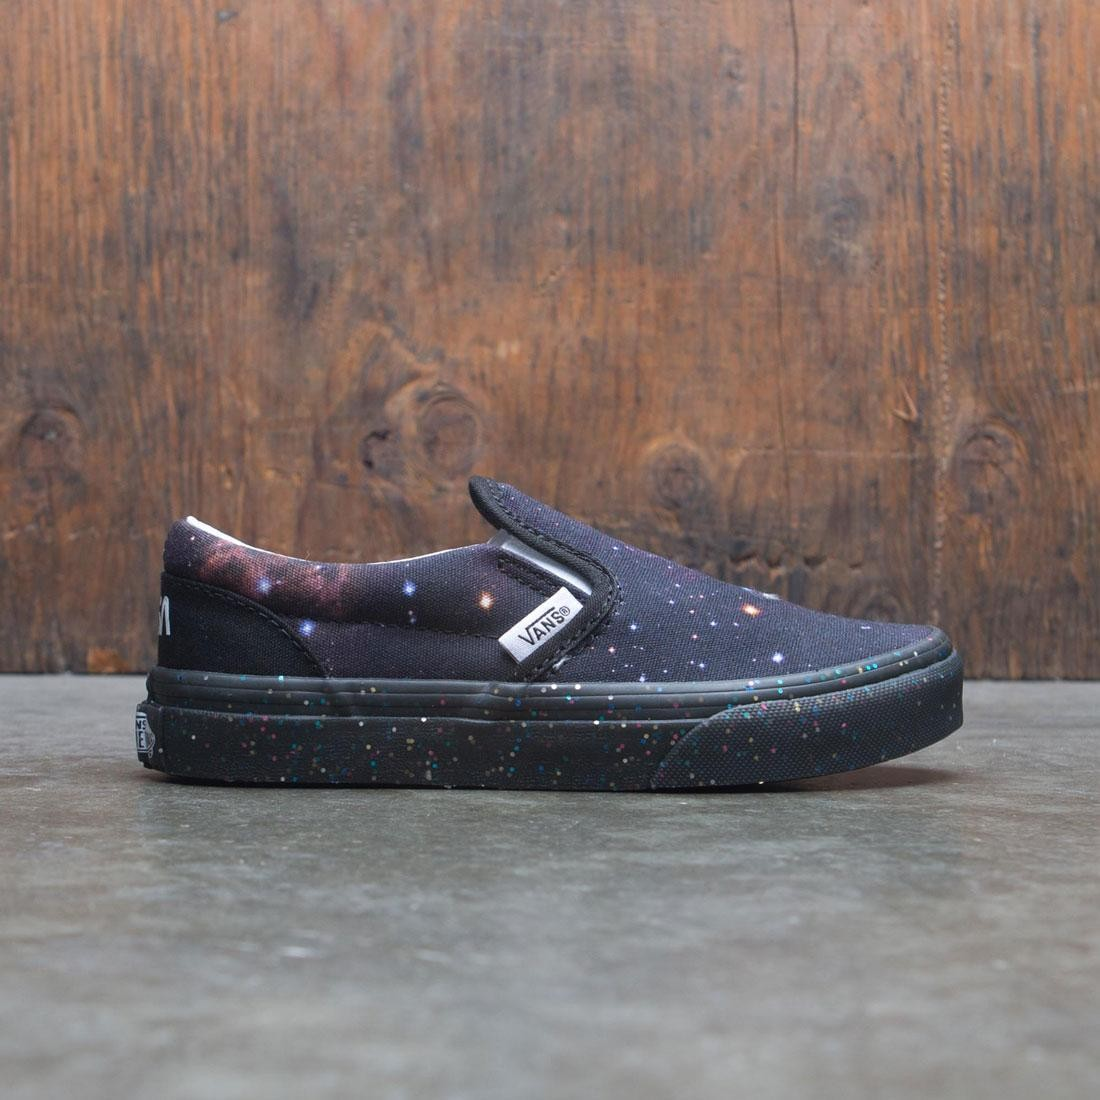 Vans Big Kids Classic Slip-On - Space Voyager (black / galaxy)